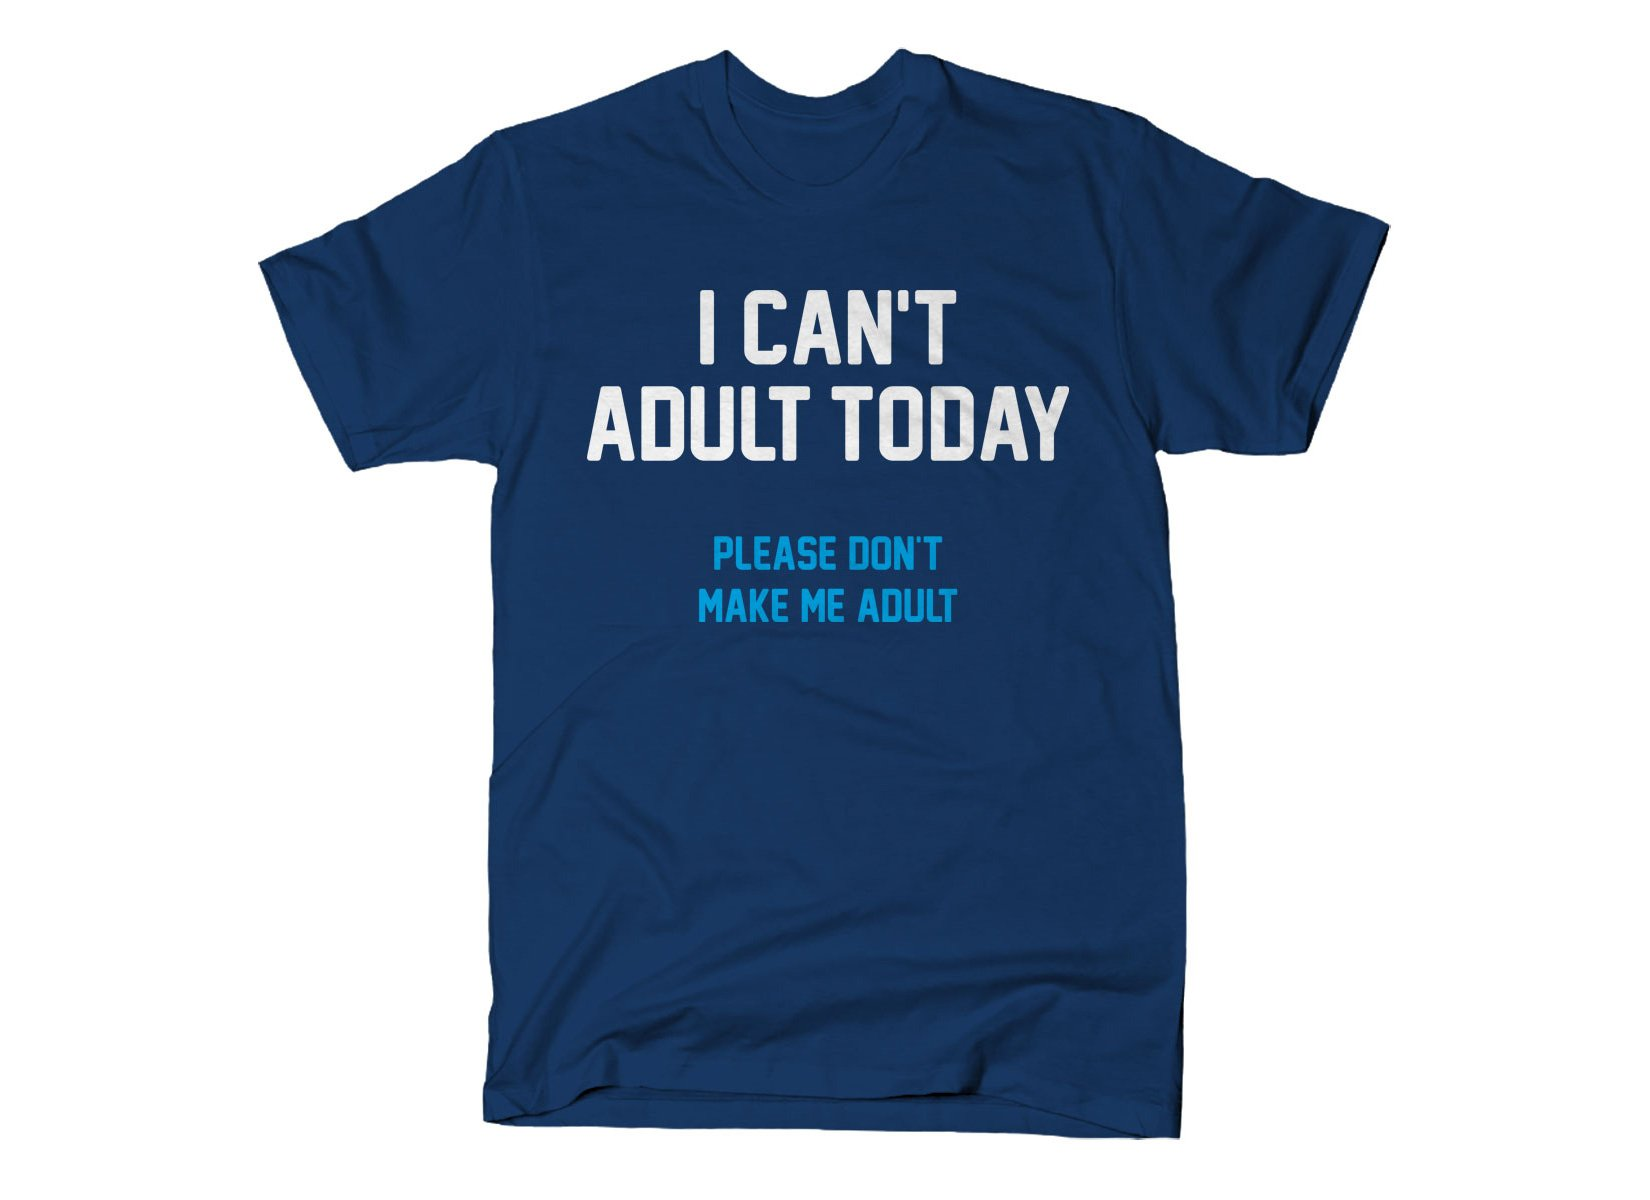 I Can't Adult Today on Mens T-Shirt